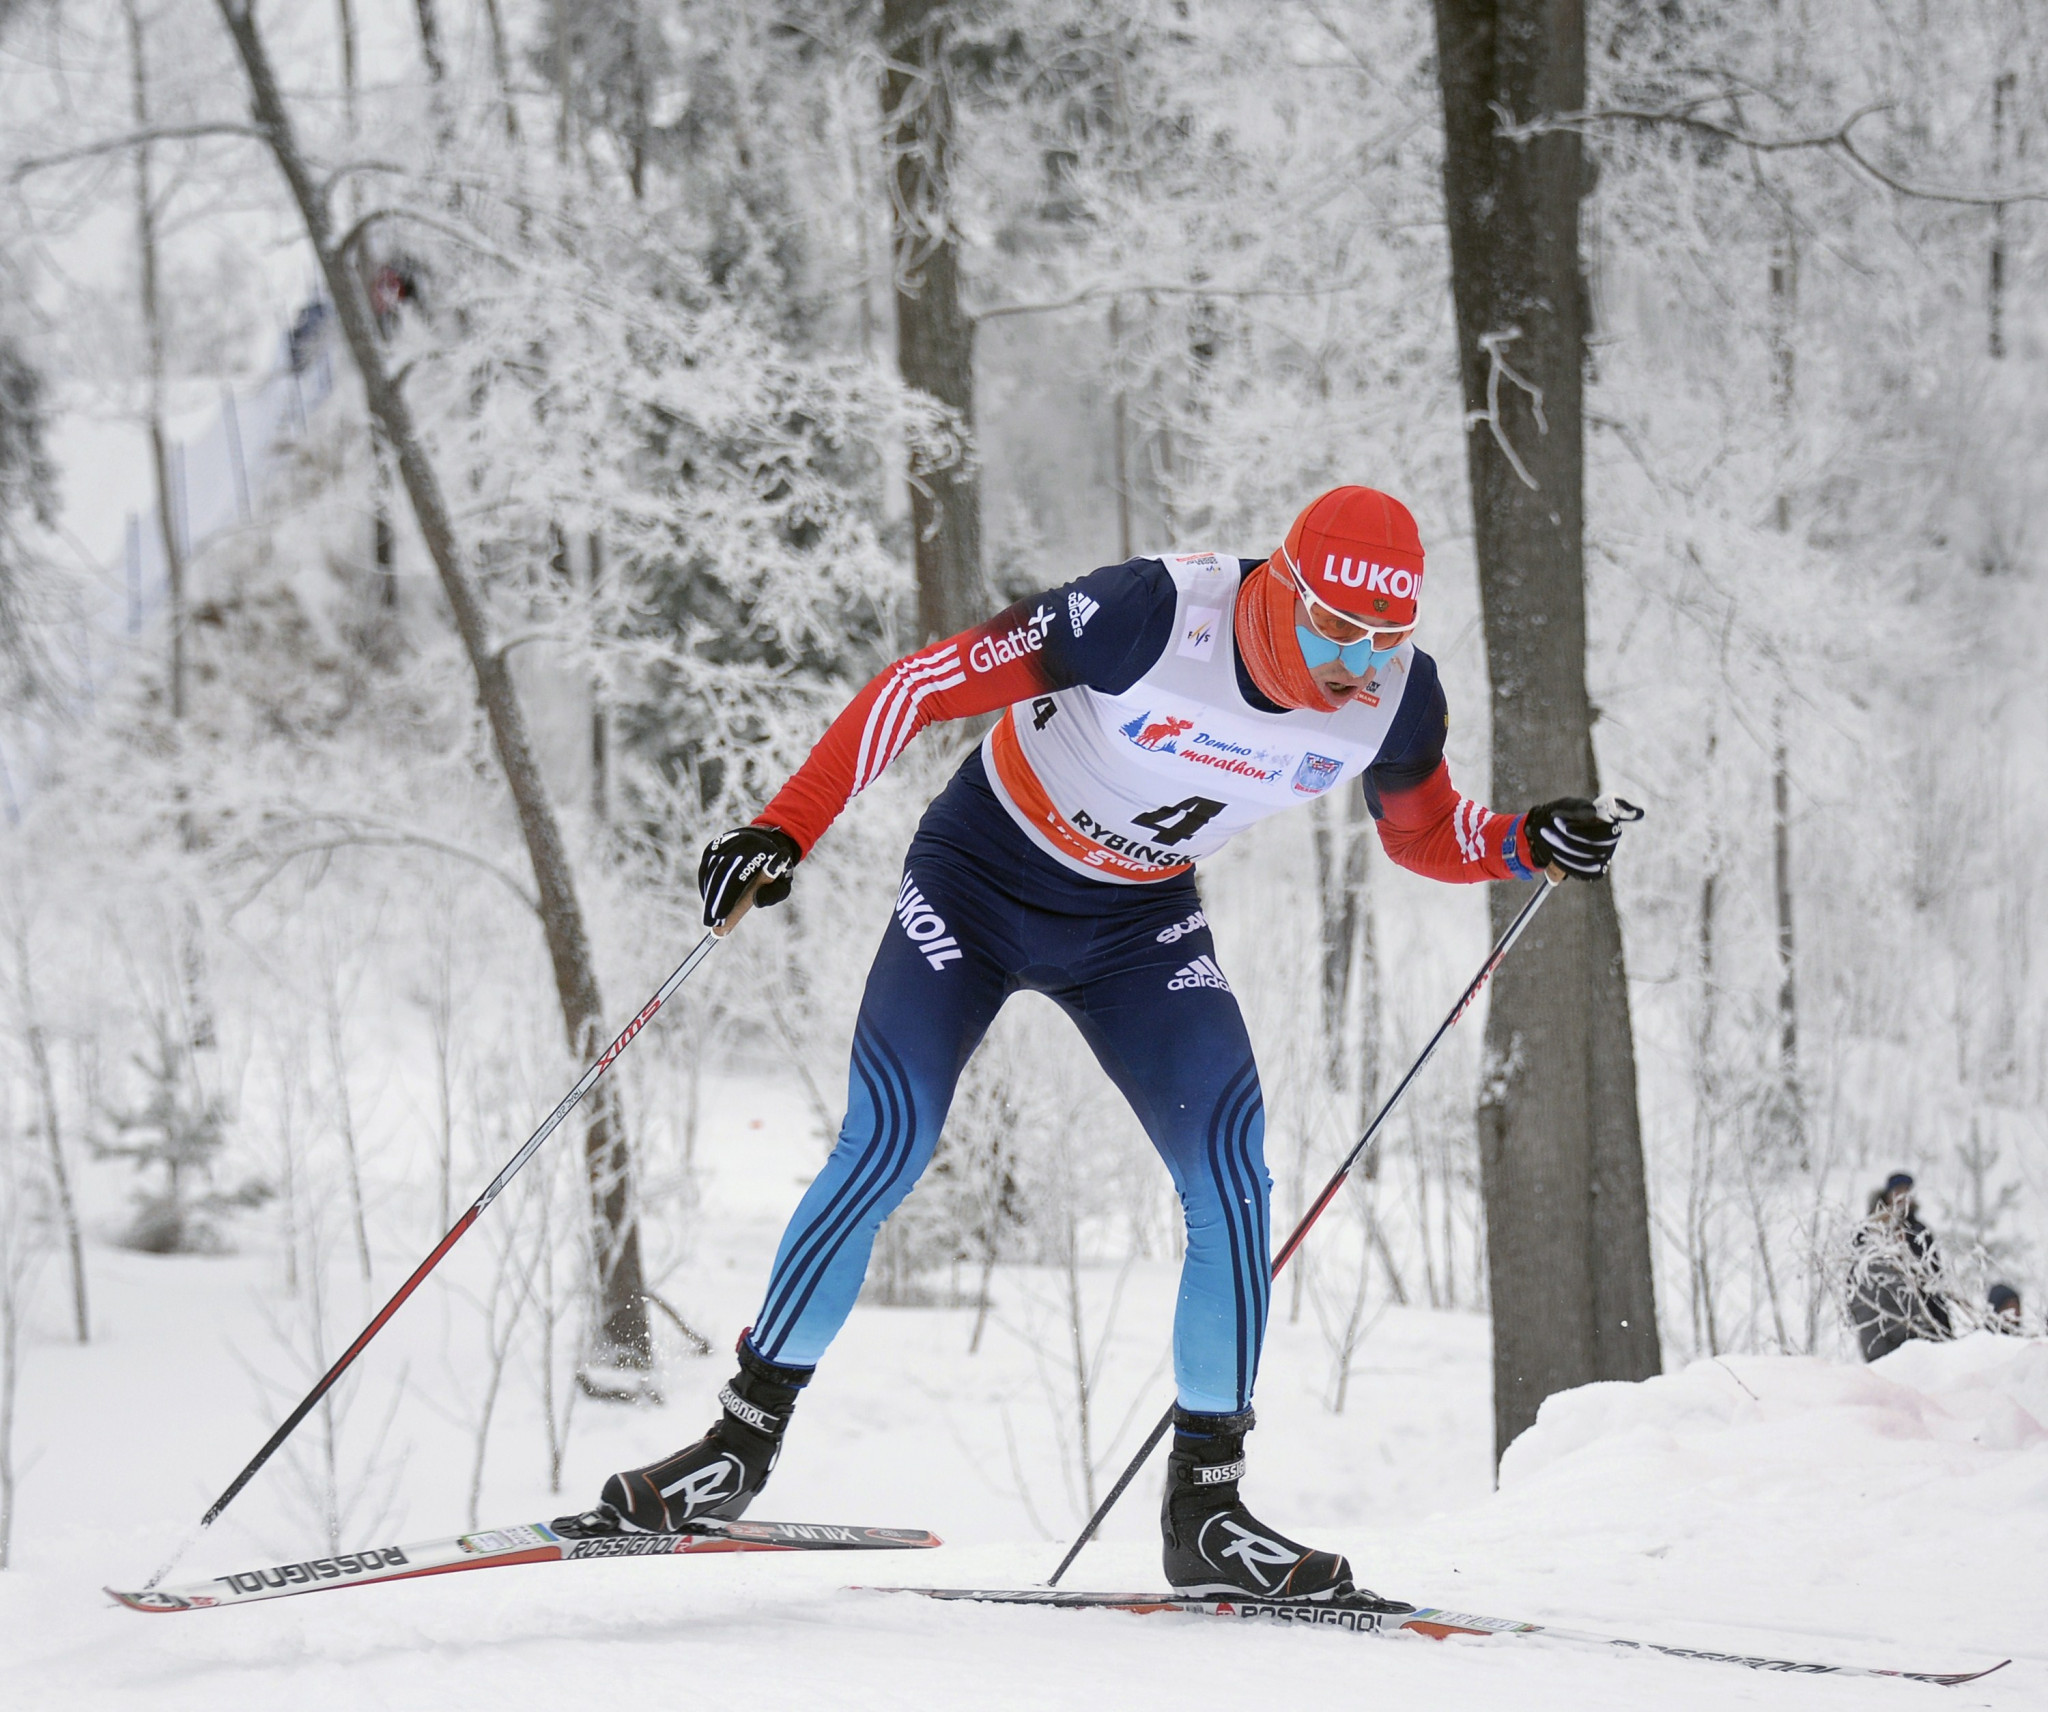 An update on the status of cases involving six Russian cross-country athletes identified in the McLaren Report is set to be provided by the International Ski Federation later this week ©Getty Images